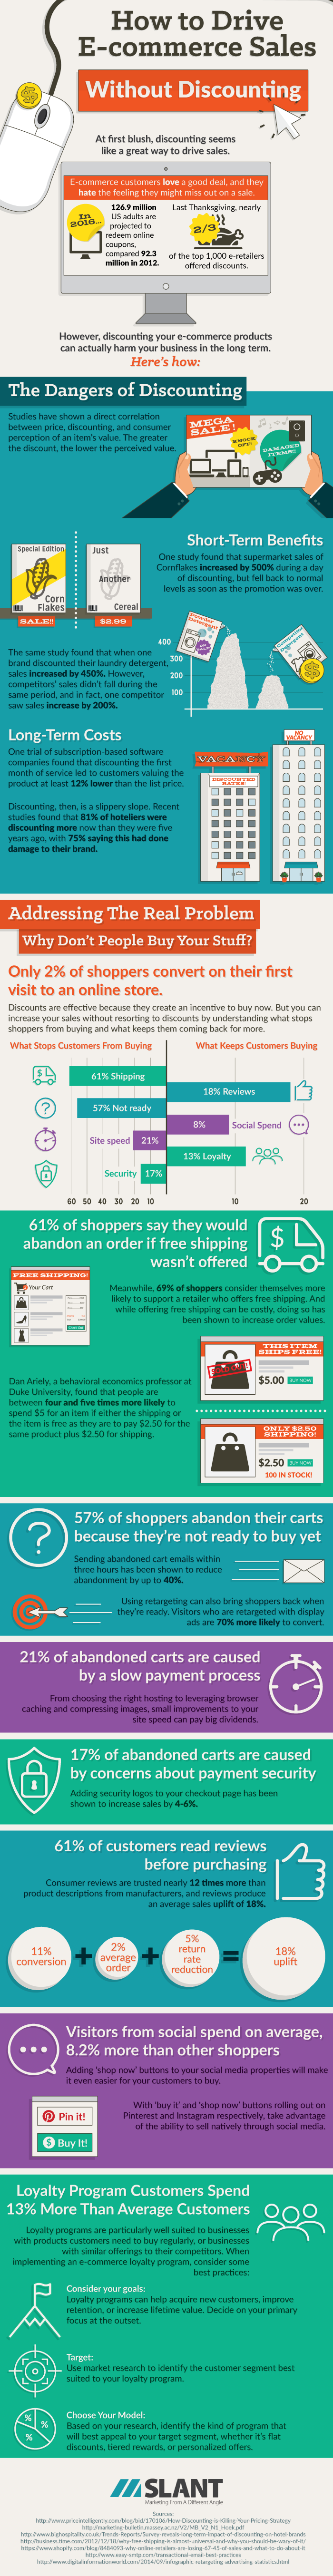 How to drive e-commerce sales without discounting infographic